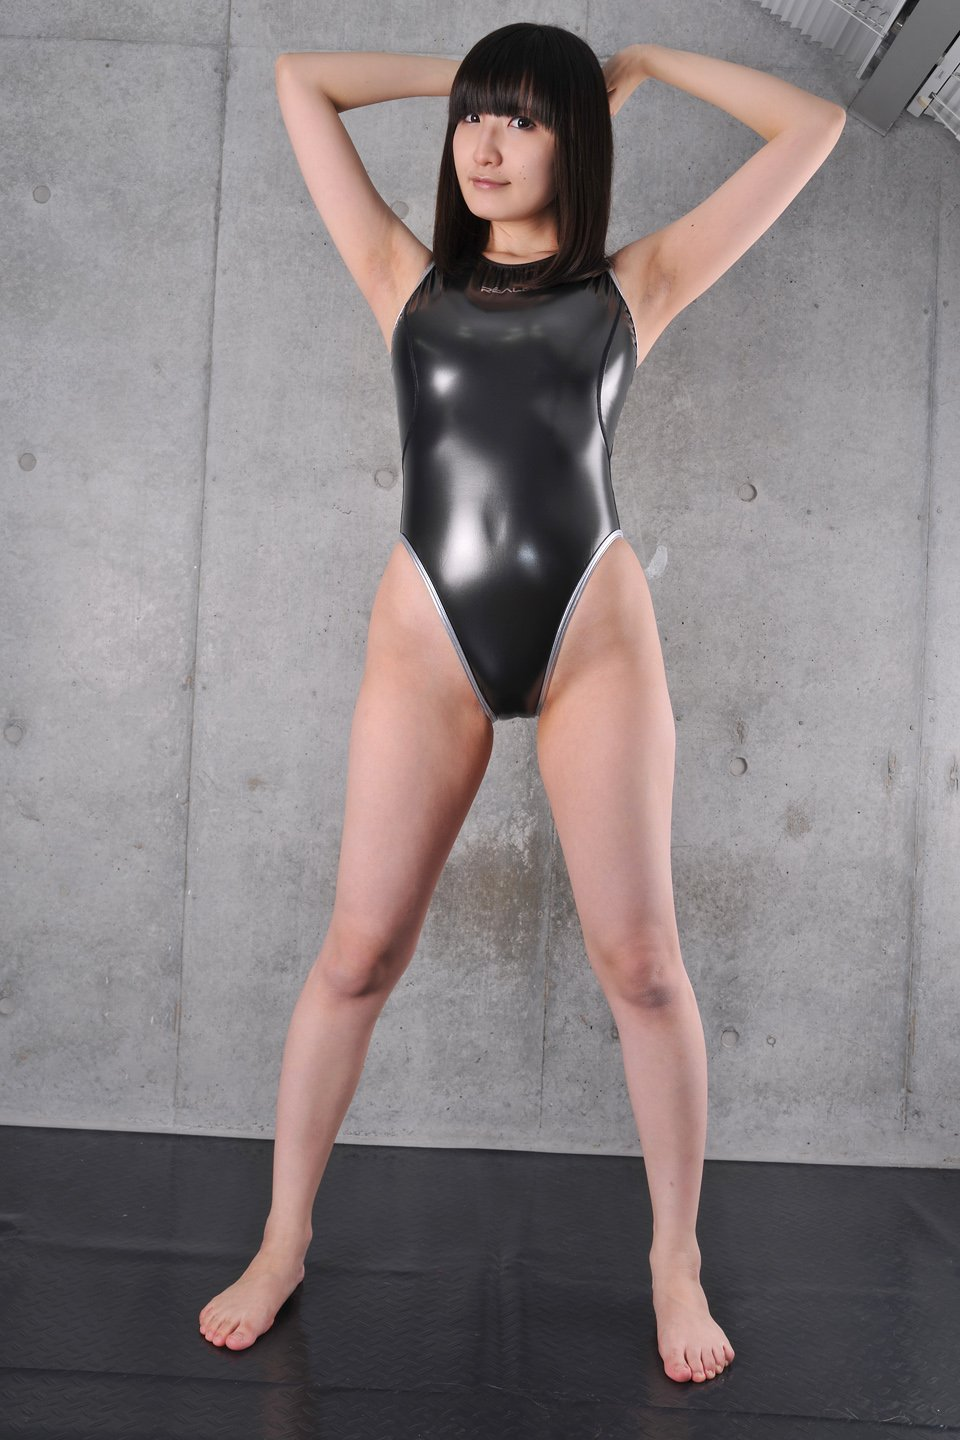 girl leotards Asian shiny